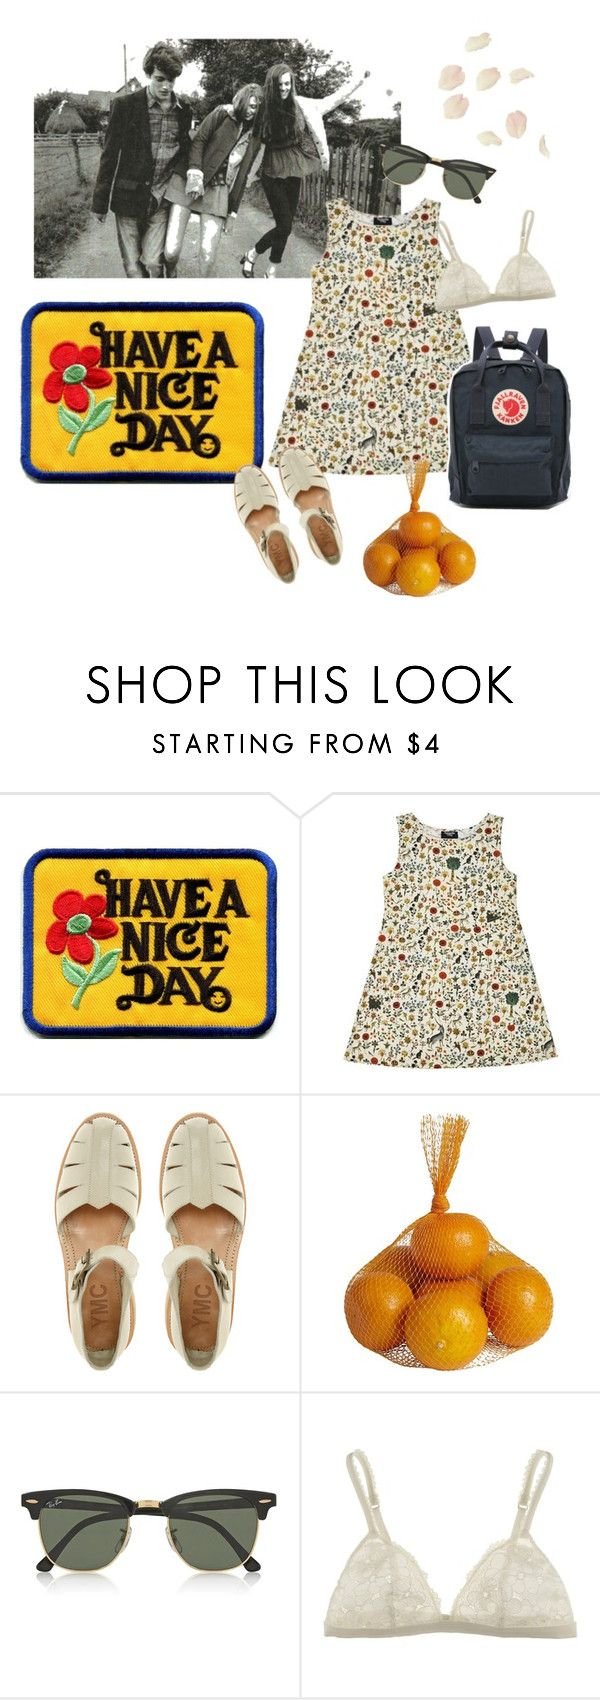 """""""bigmouth strikes again"""" by sbolger ❤ liked on Polyvore featuring Samantha Pleet, YMC, Pier 1 Imports, Ray-Ban, La Perla and Fjällräven"""